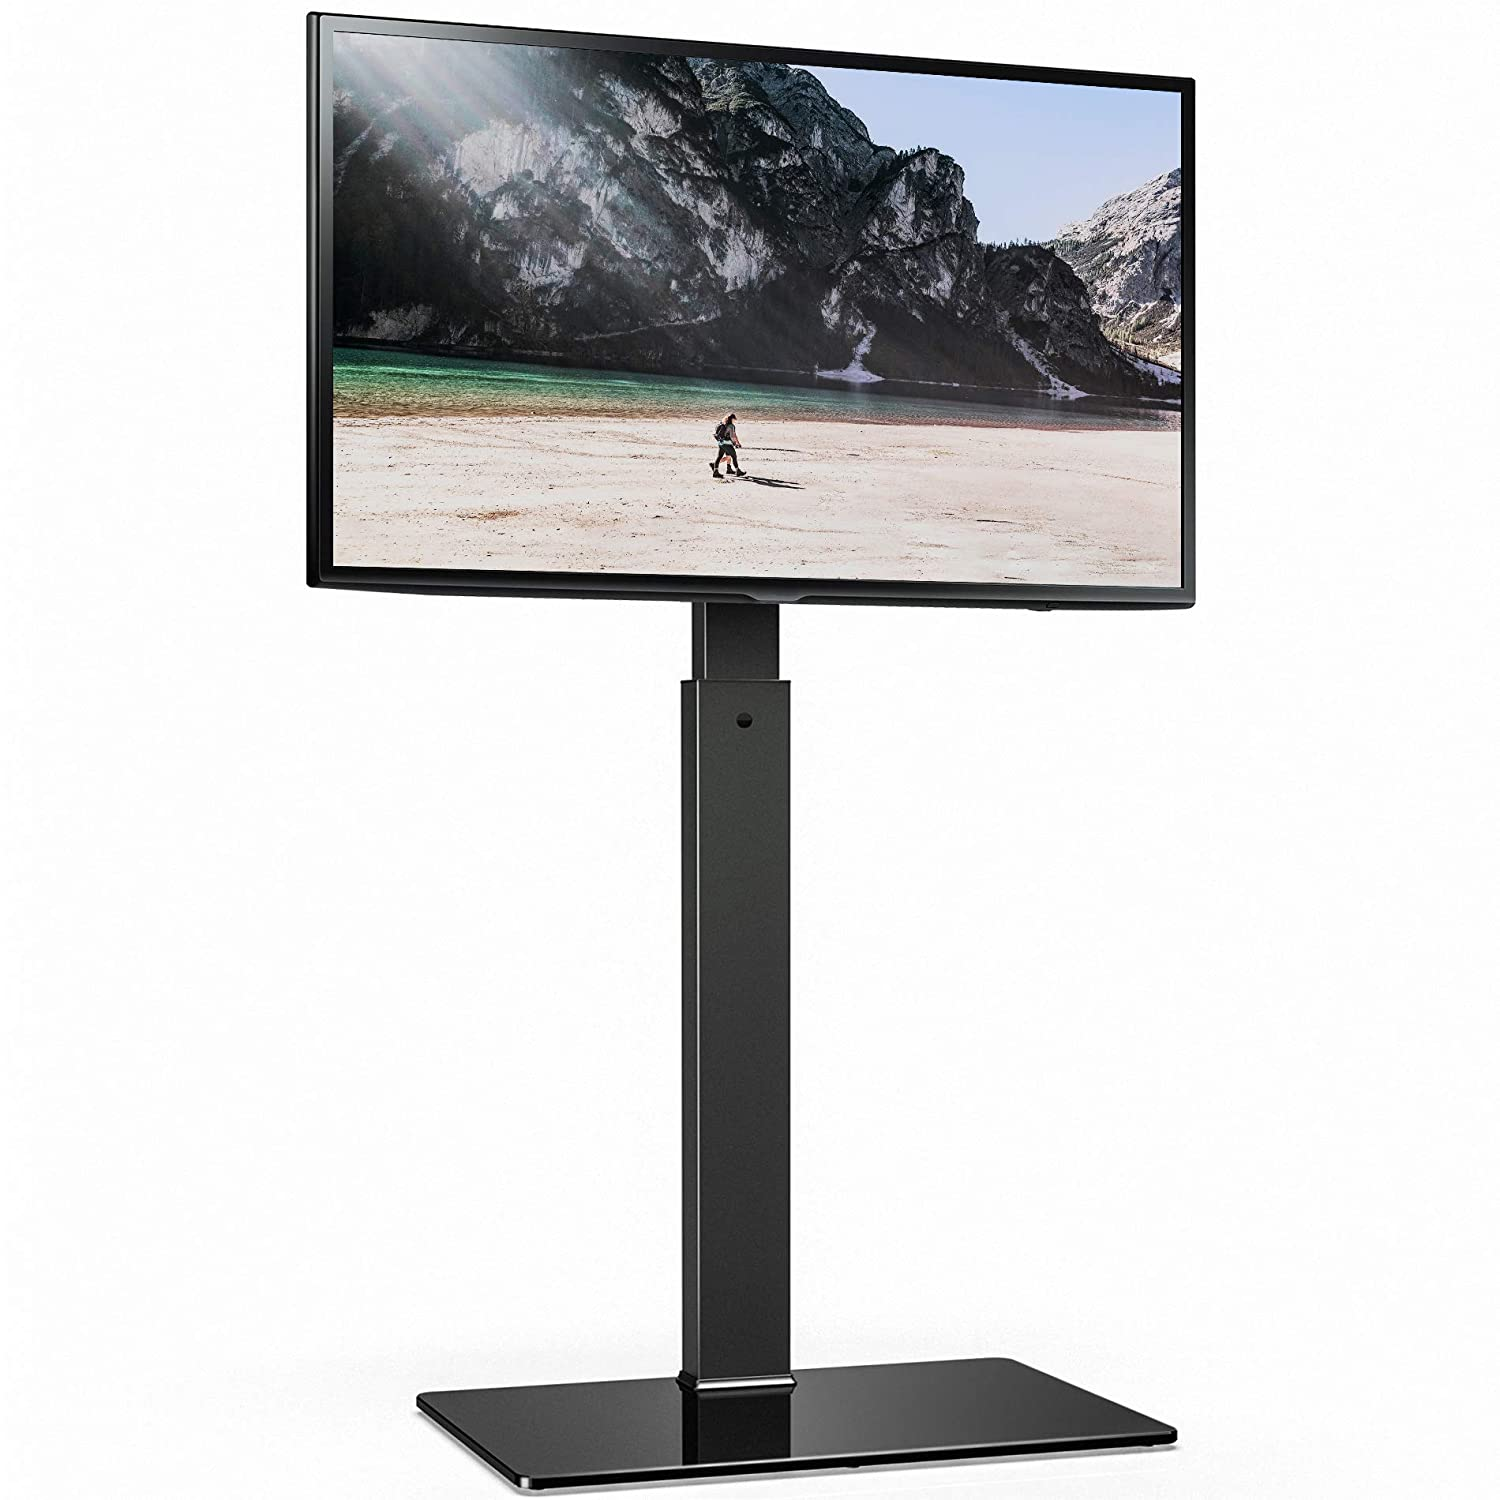 FITUEYES Universal TV Stand Base with Swivel Mount Height Adjustable for 32 to 65 Inch TV, TT107501MB